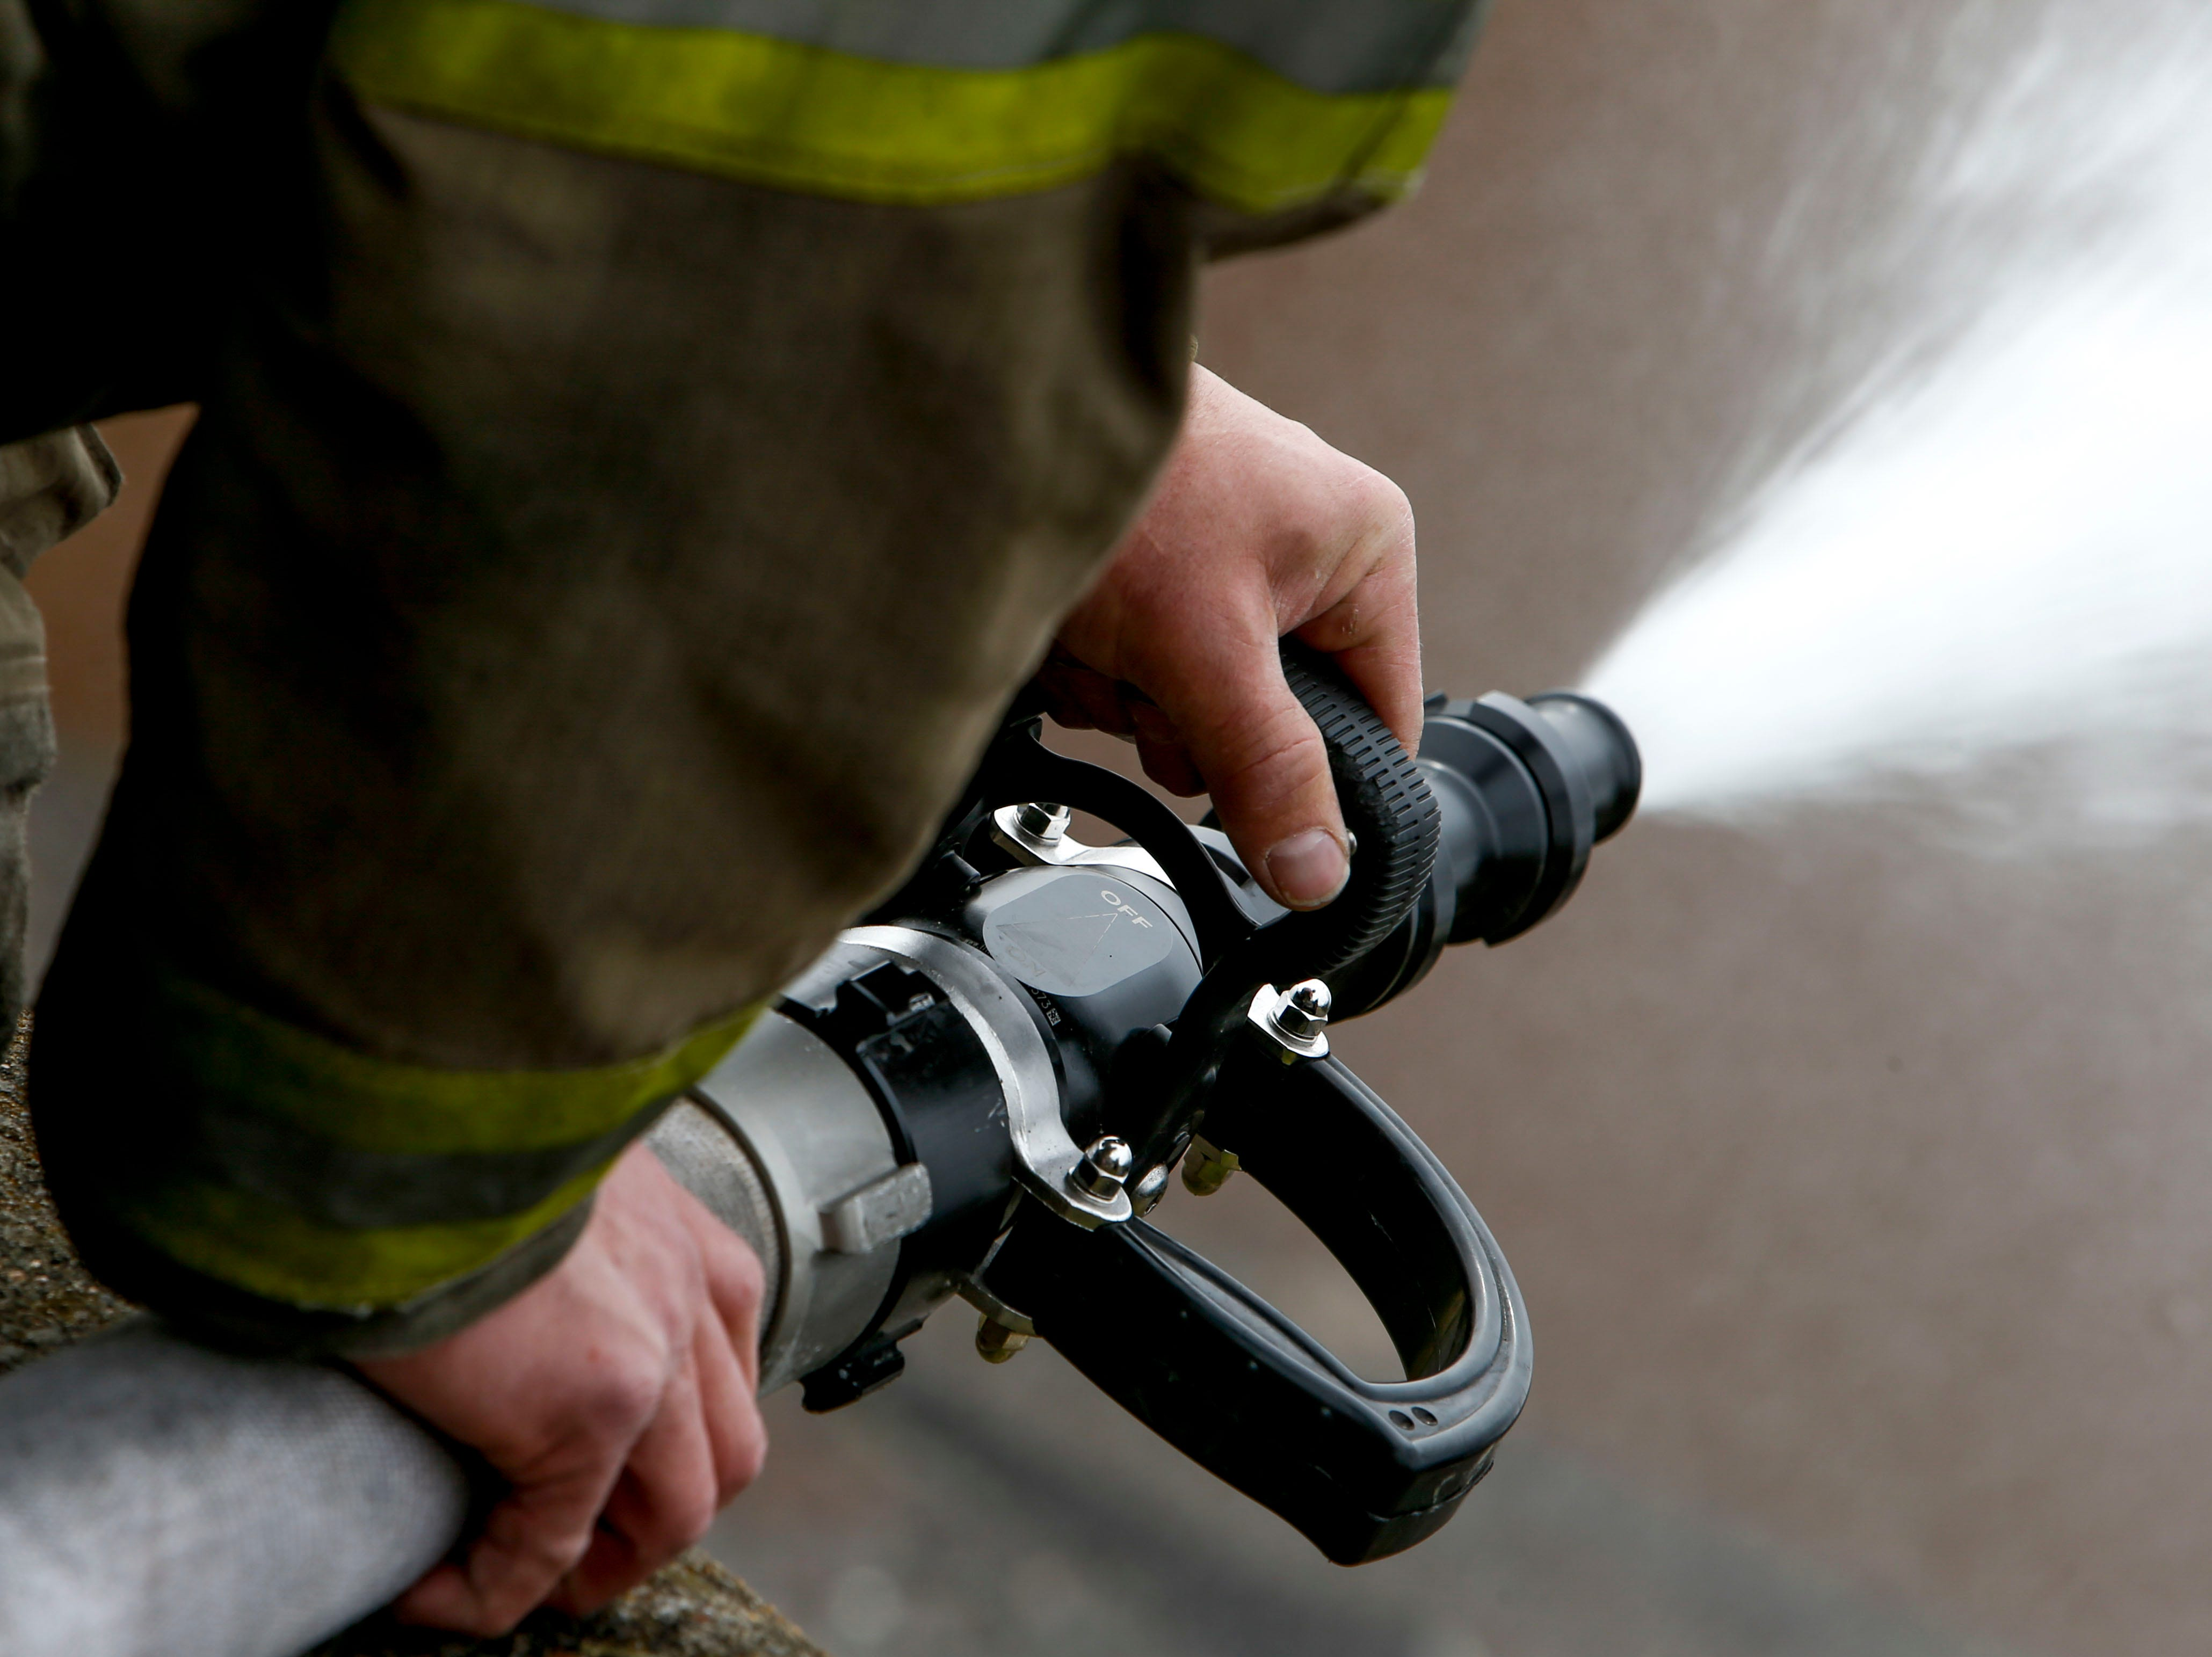 A Clarksville Fire Rescue firefighter holds down a hose while working to put out a fire in the shooting range at Clarksville Guns & Archery in Clarksville, Tenn., on Tuesday, March 12, 2019.